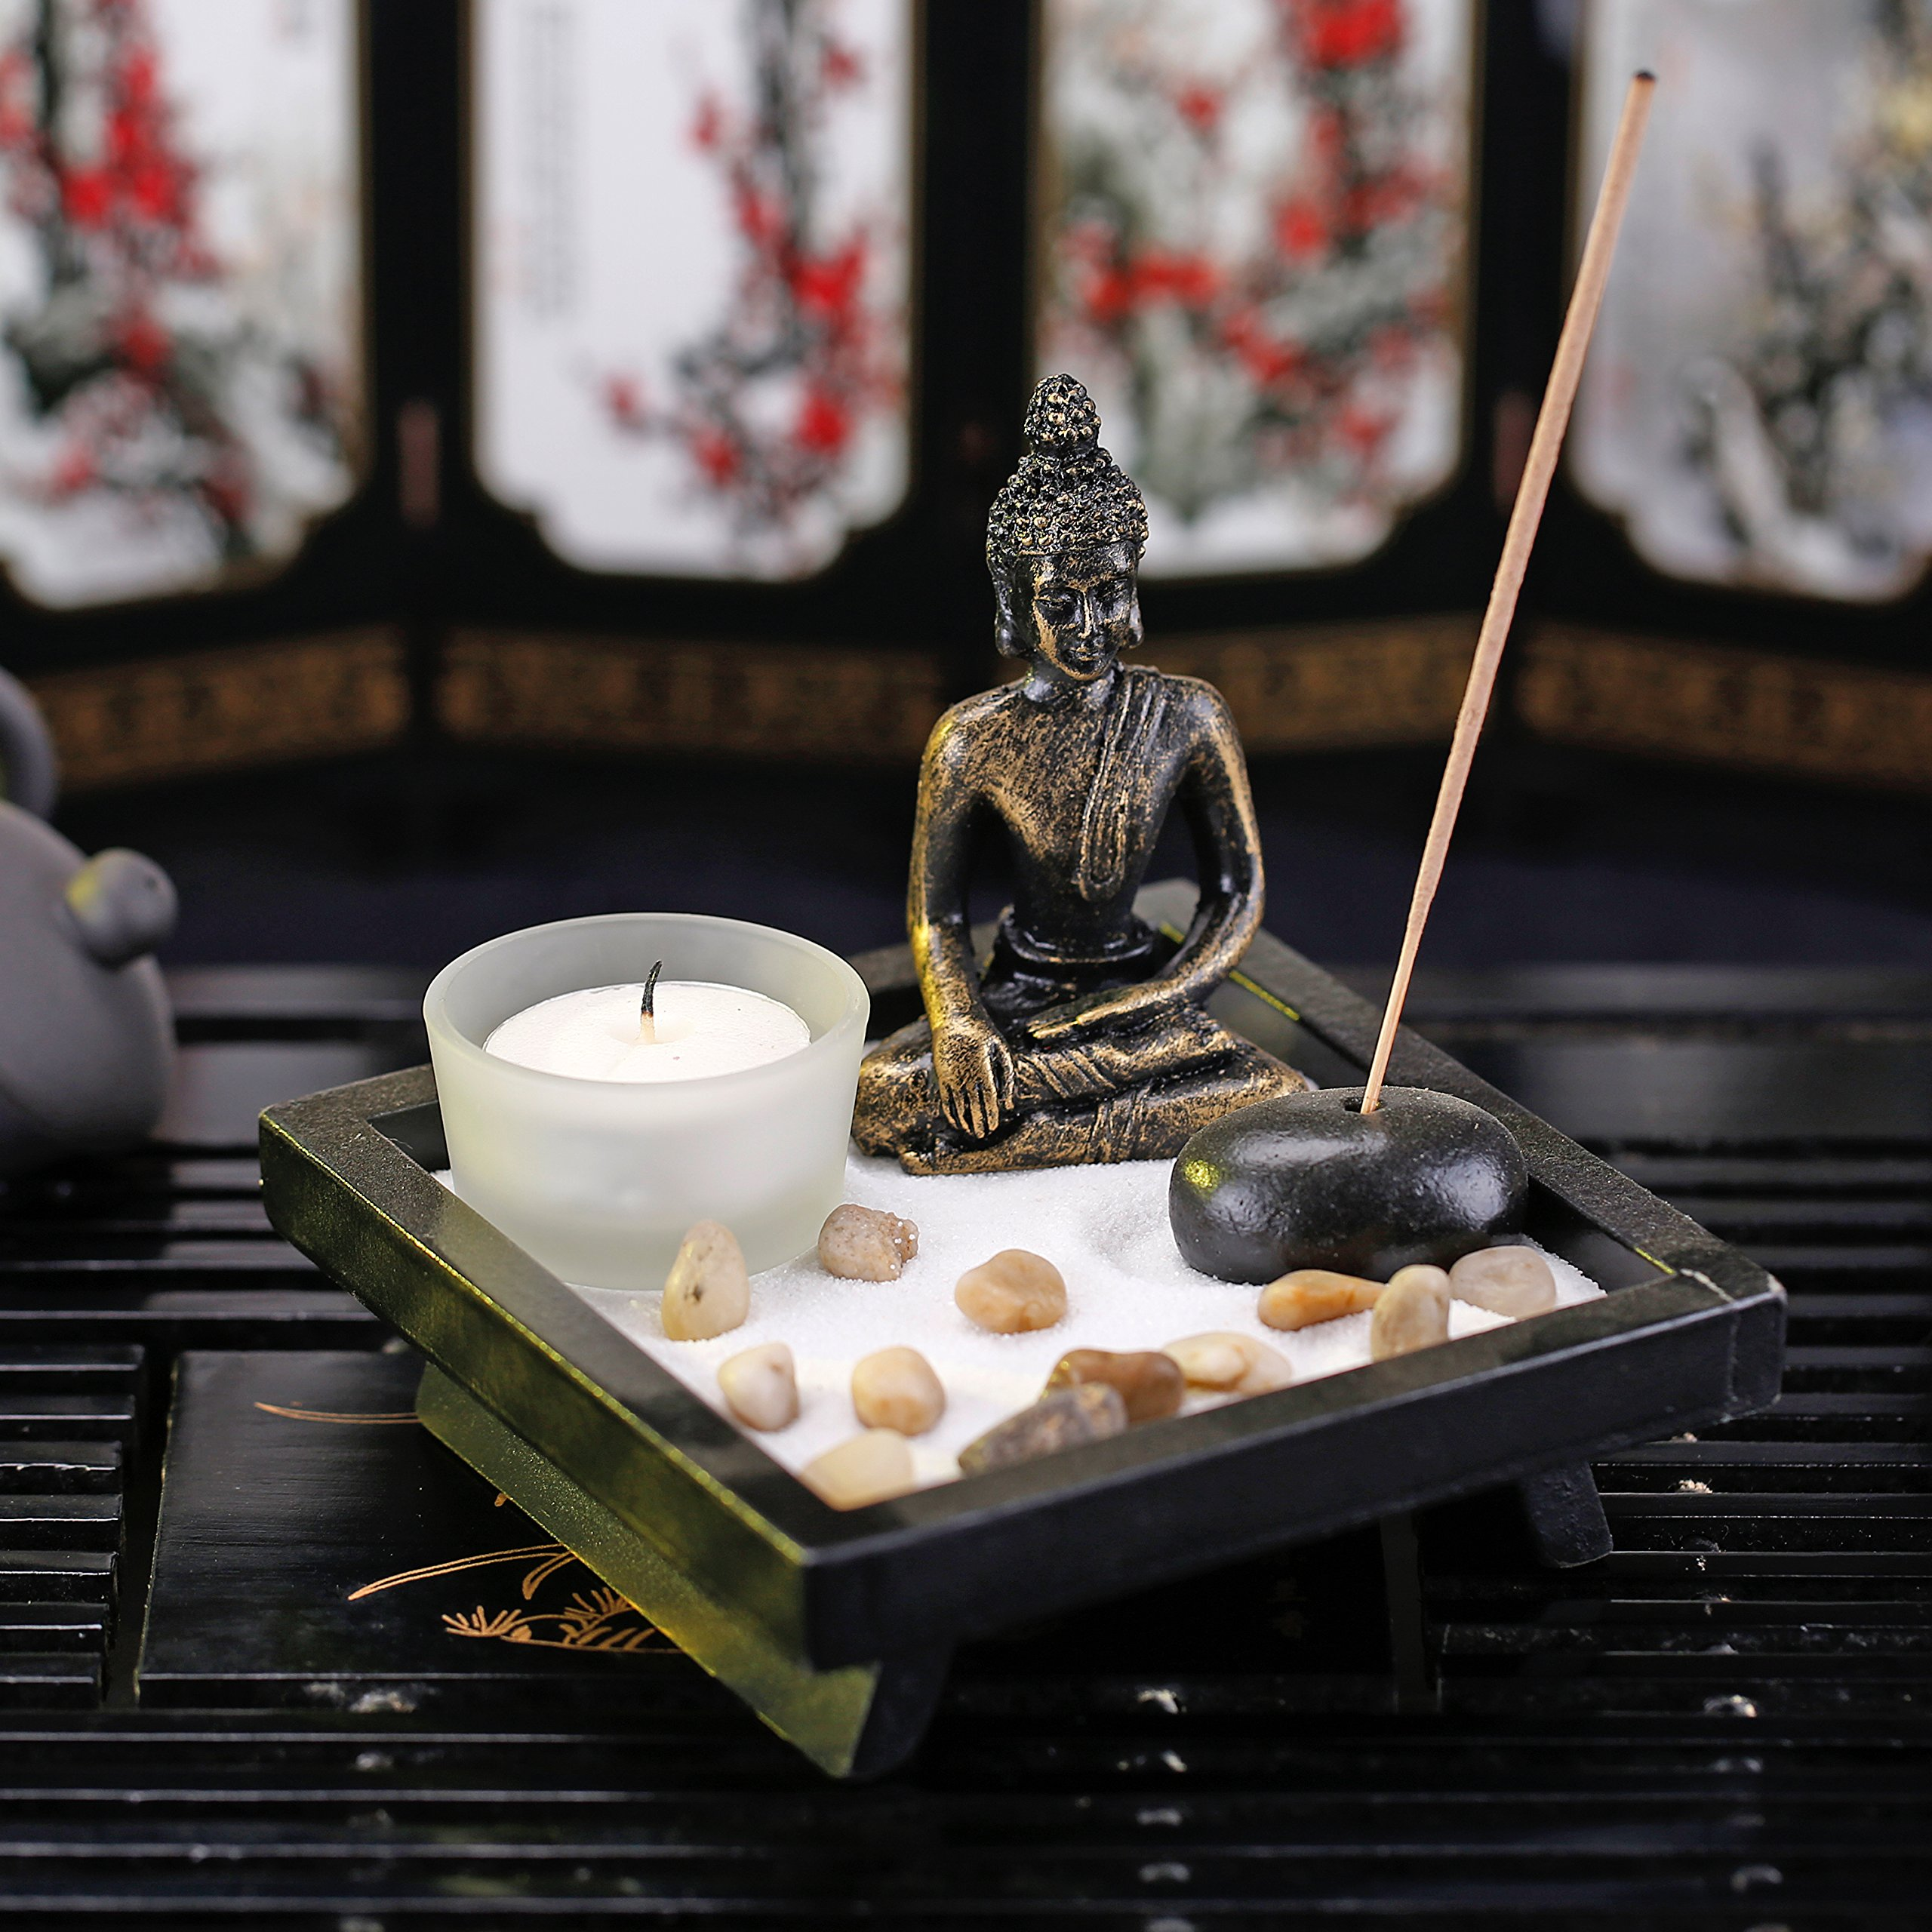 Mini Zen Rock Garden with Buddha Statue, Incense and Tealight Candle Holder - MyGift